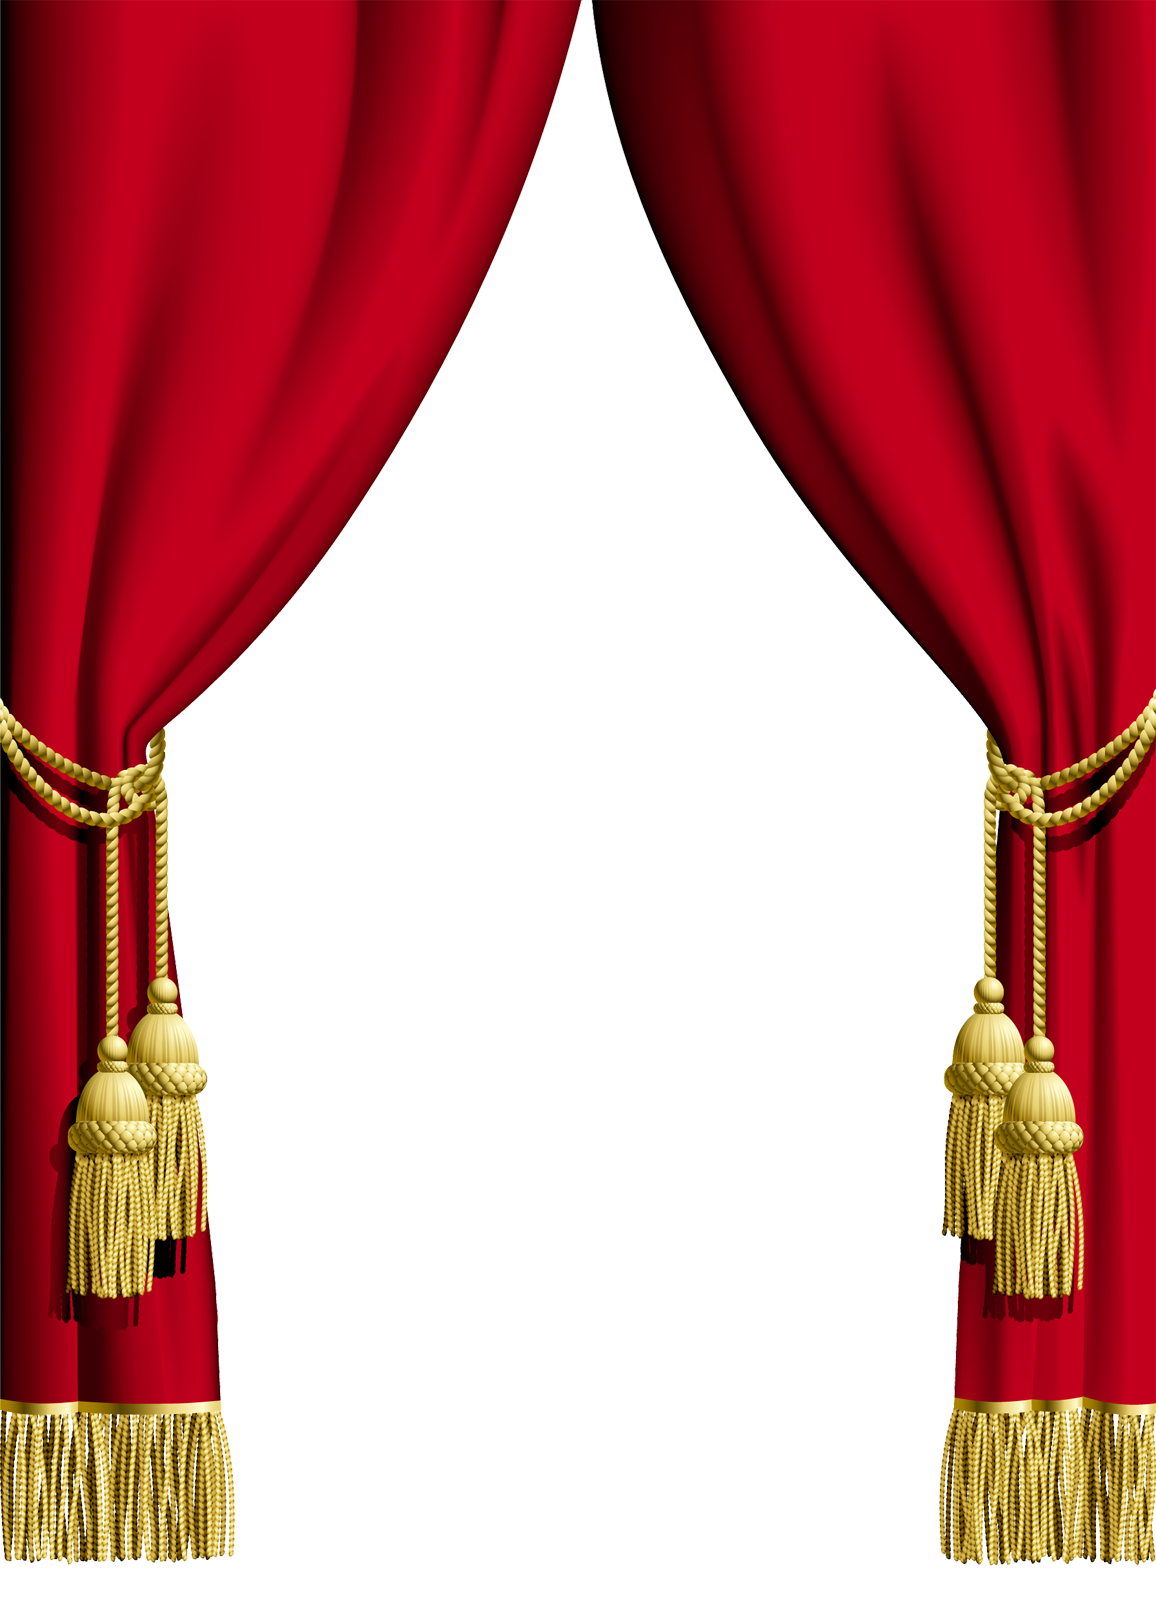 Curtains png images free. Curtain clipart blue curtain clipart transparent